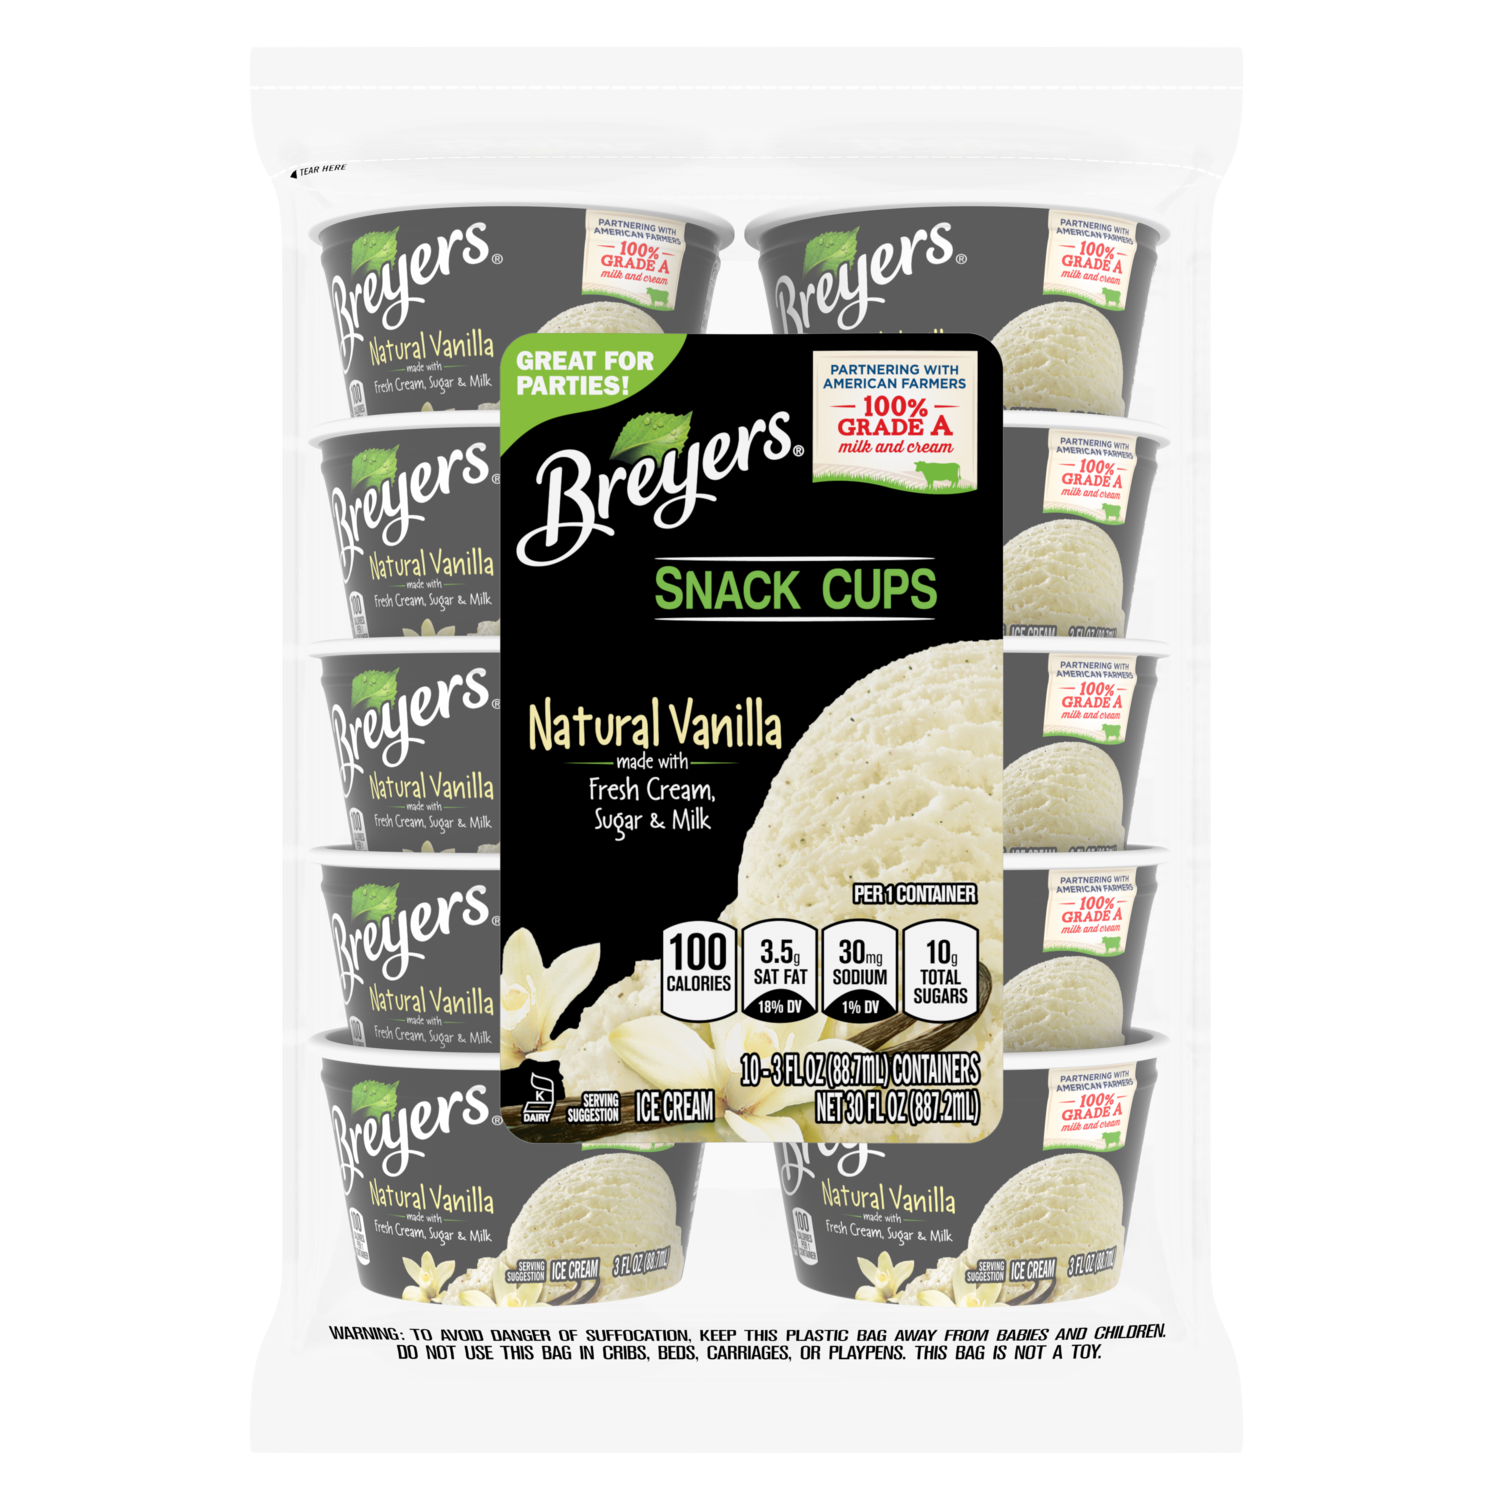 Breyers Original Ice Cream Natural Vanilla Snack Cups 3 oz